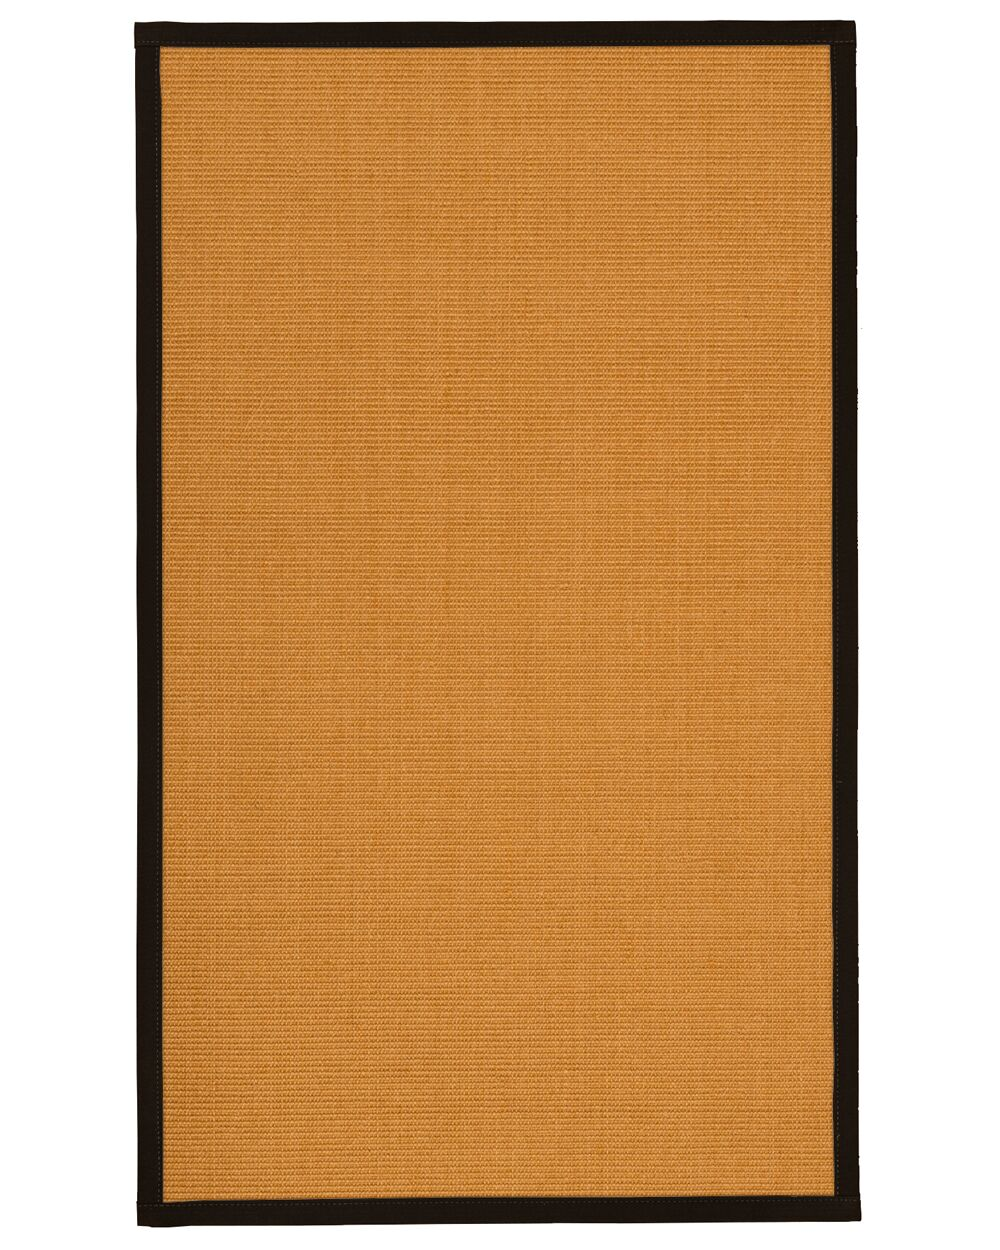 Dascomb Small Boucle Natural Fiber Sisal Hand-Woven Beige Area Rug Rug Size: Rectangle 3' x 5'